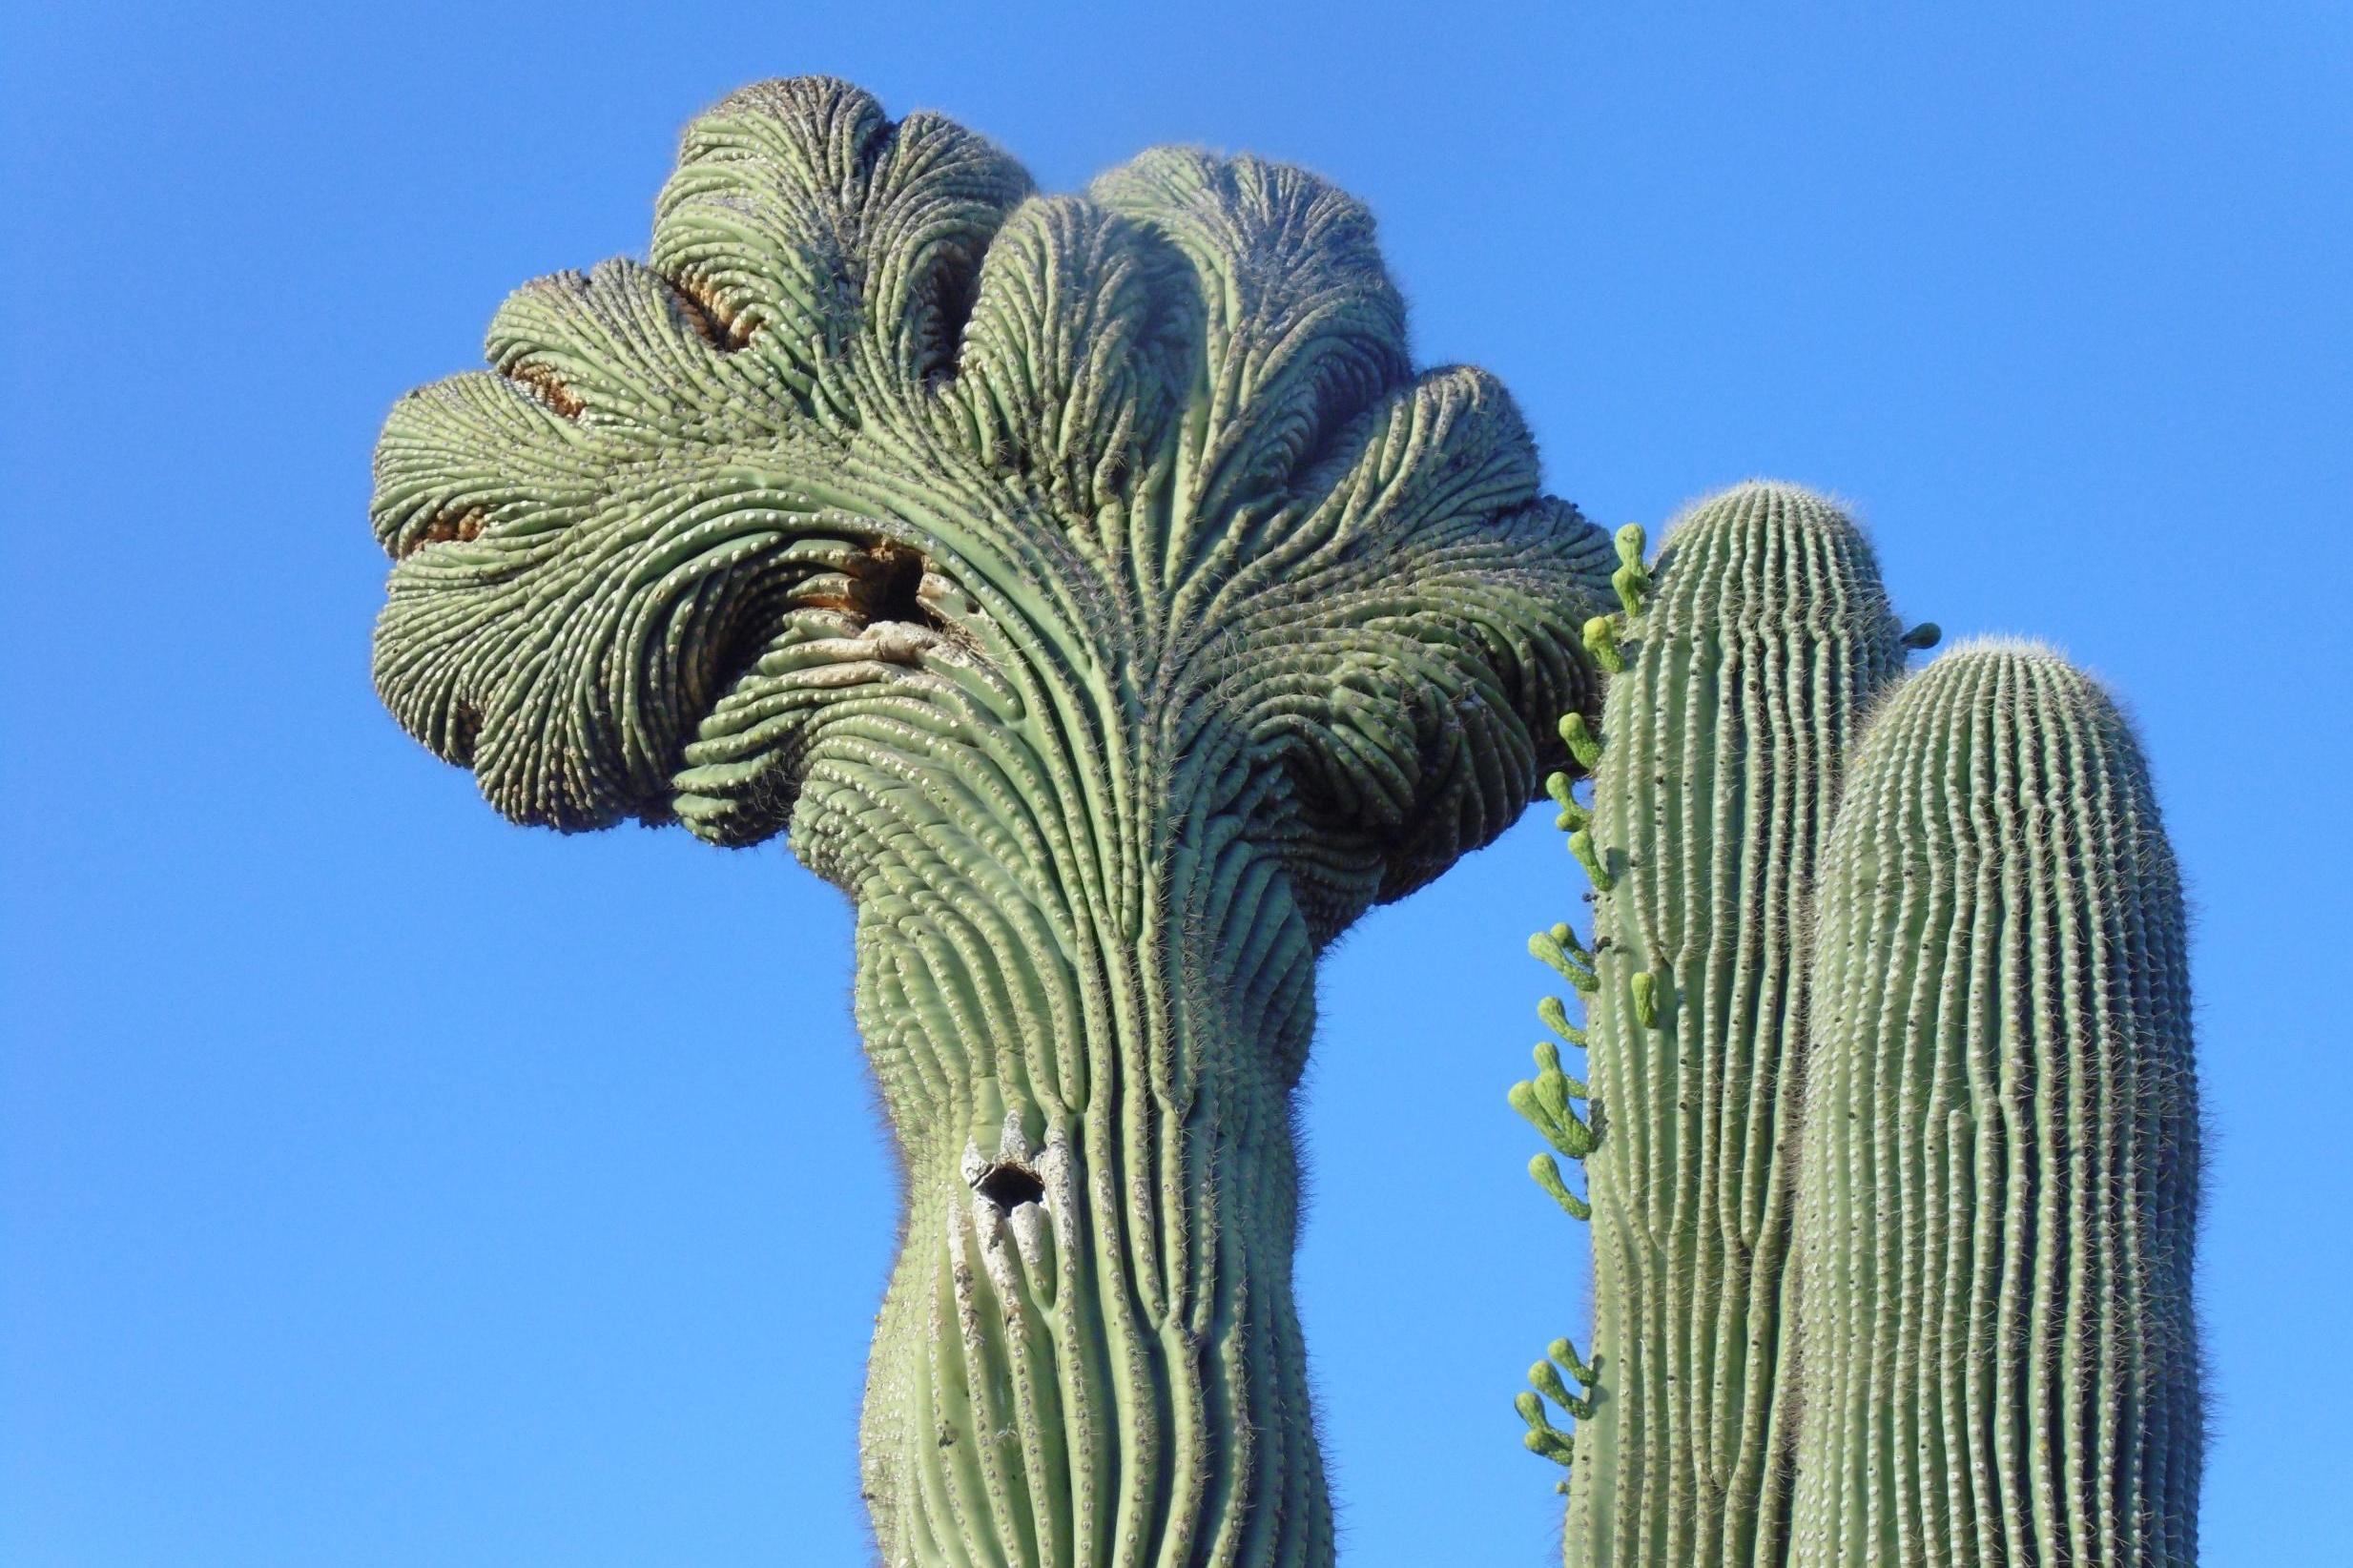 Cactus Latest News Breaking Stories And Comment The Independent